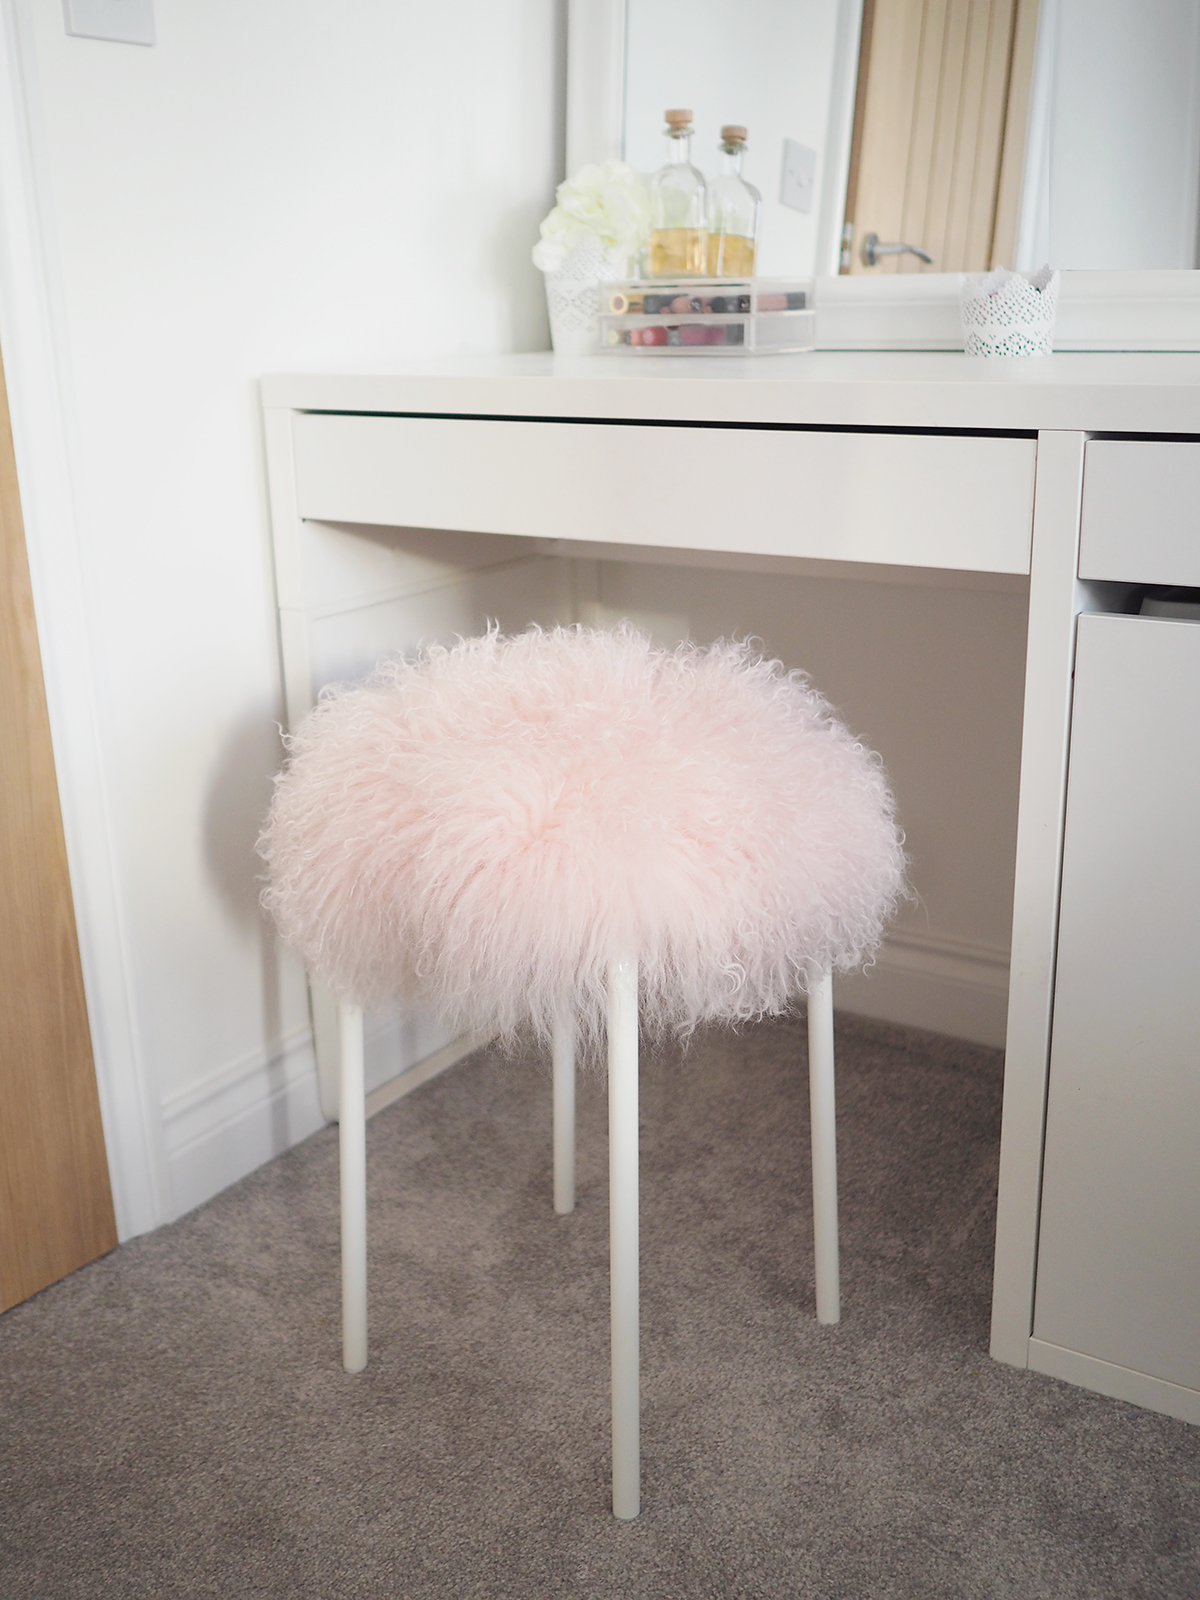 5 Minute Fluffy Stool Diy Tutorial Ikea Hack Bang On Style